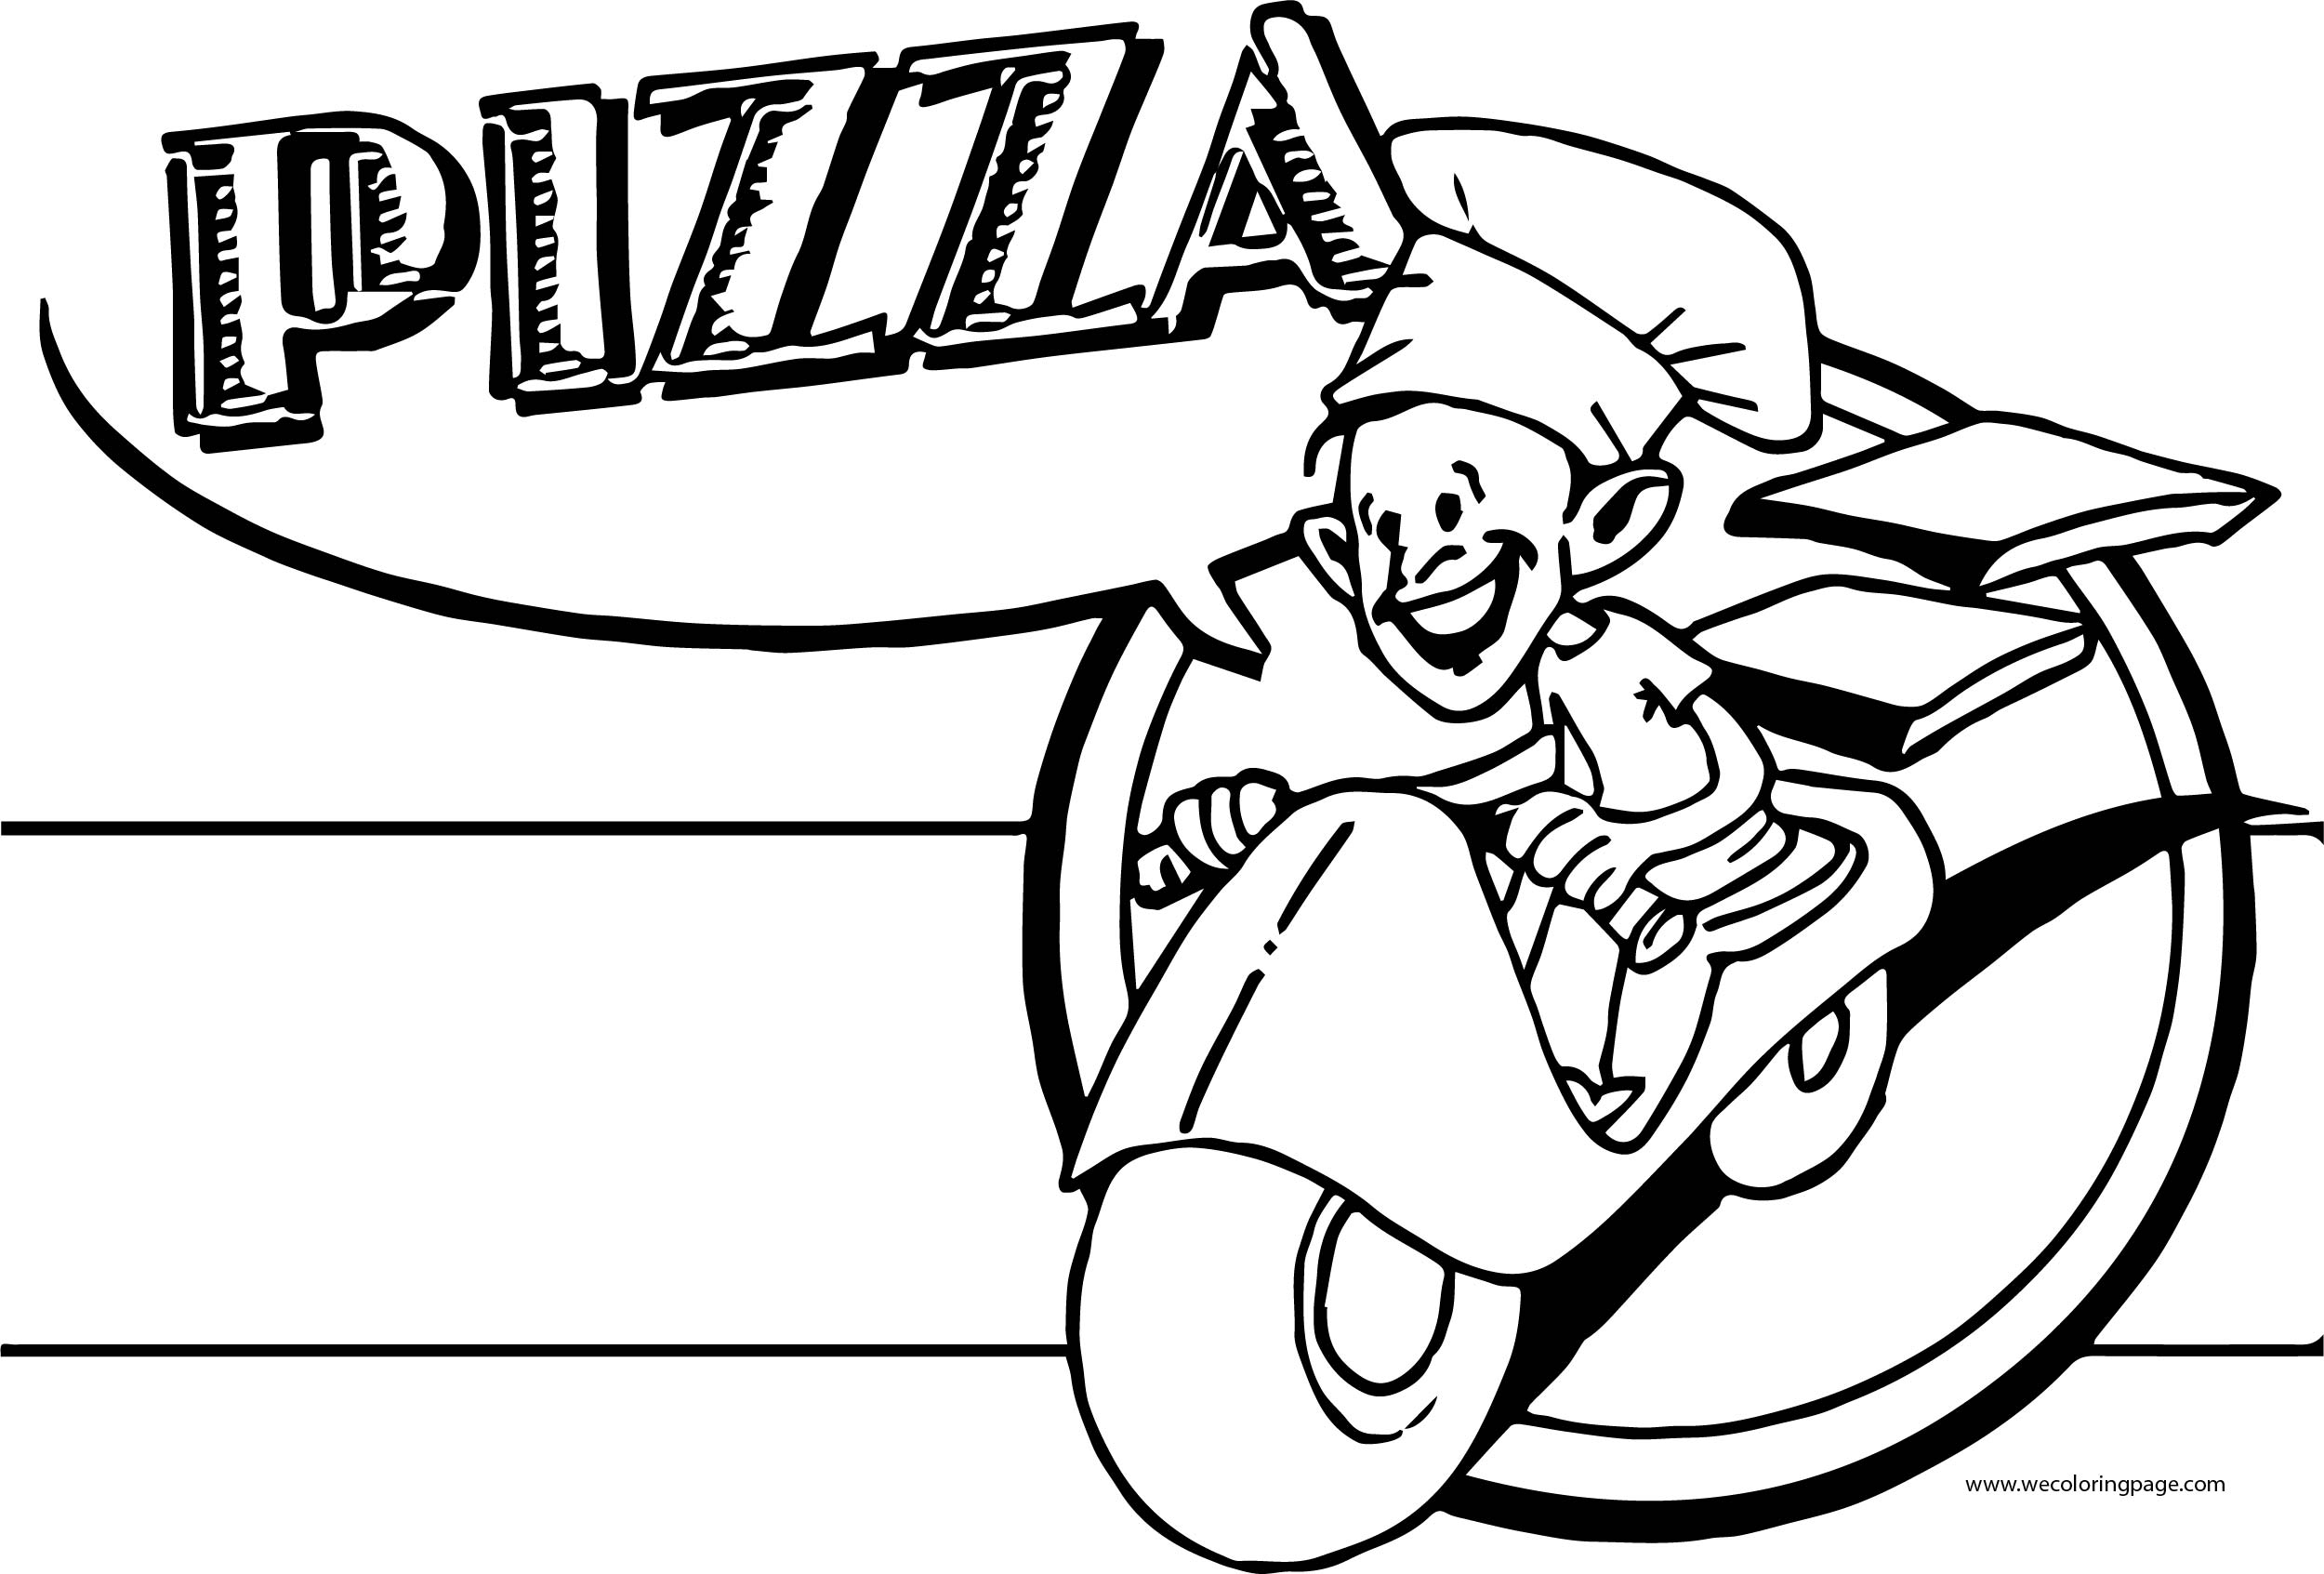 Pizza Bike Man Coloring Page